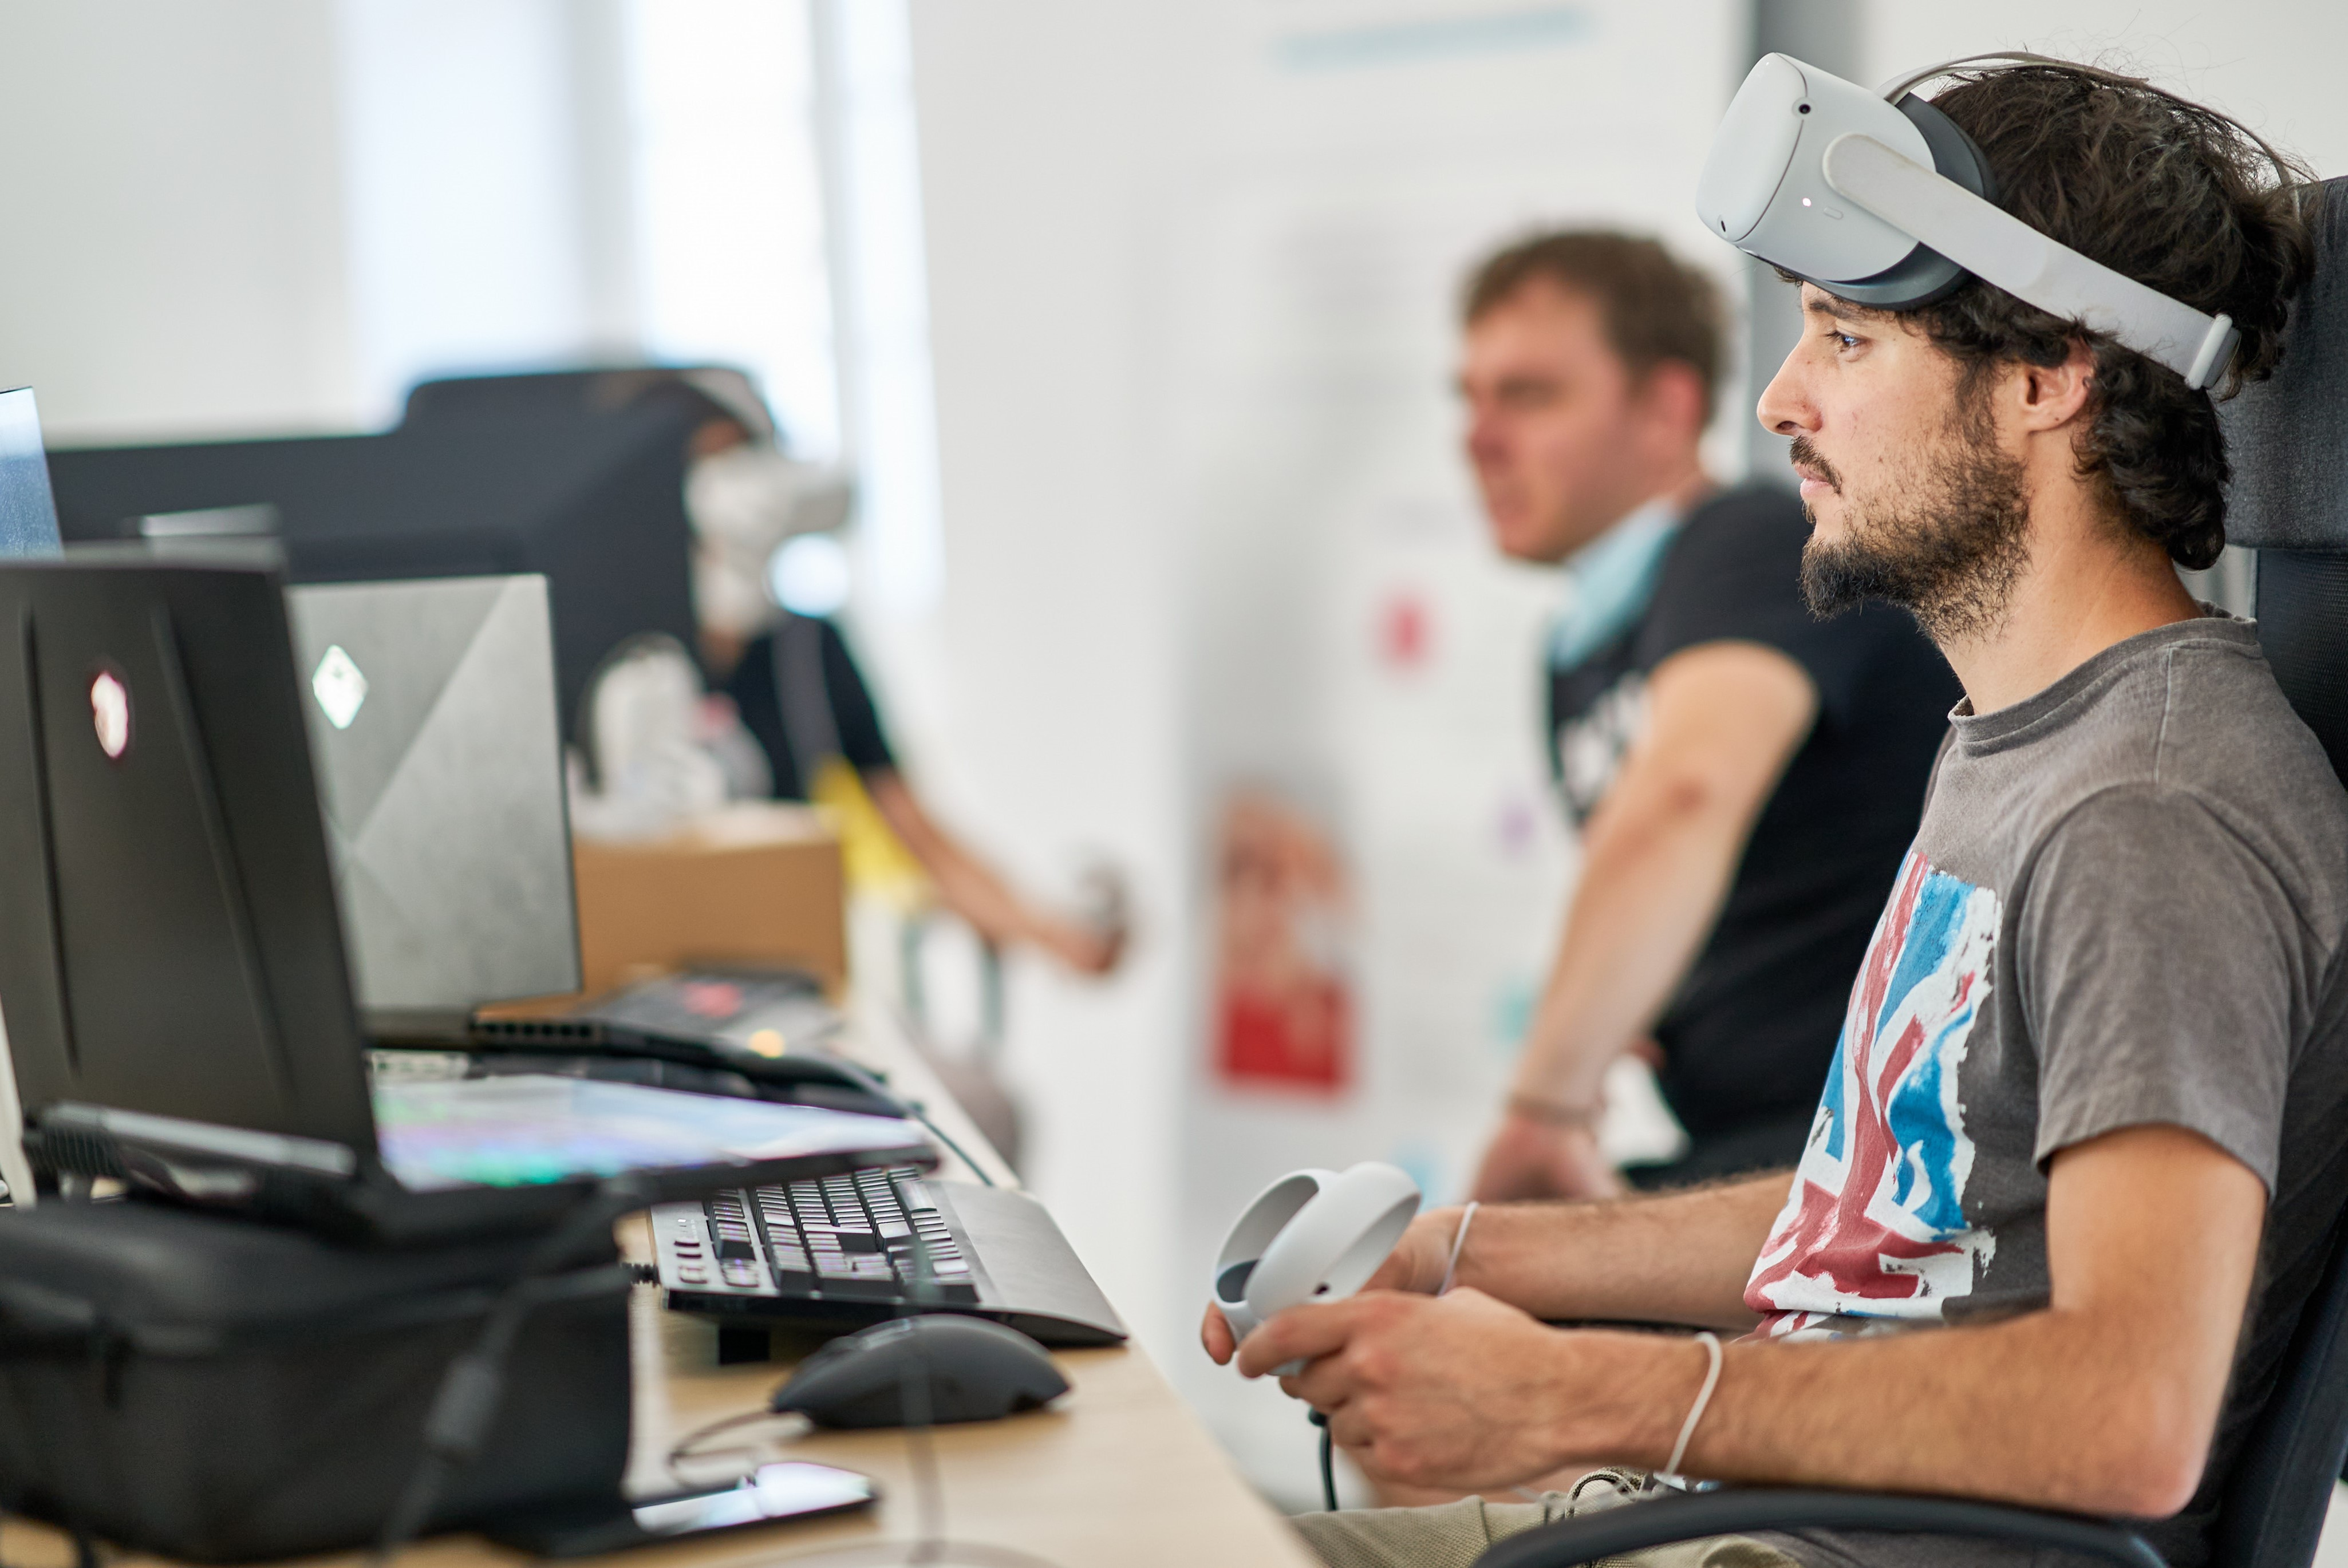 We are looking for a Lead VR Developer